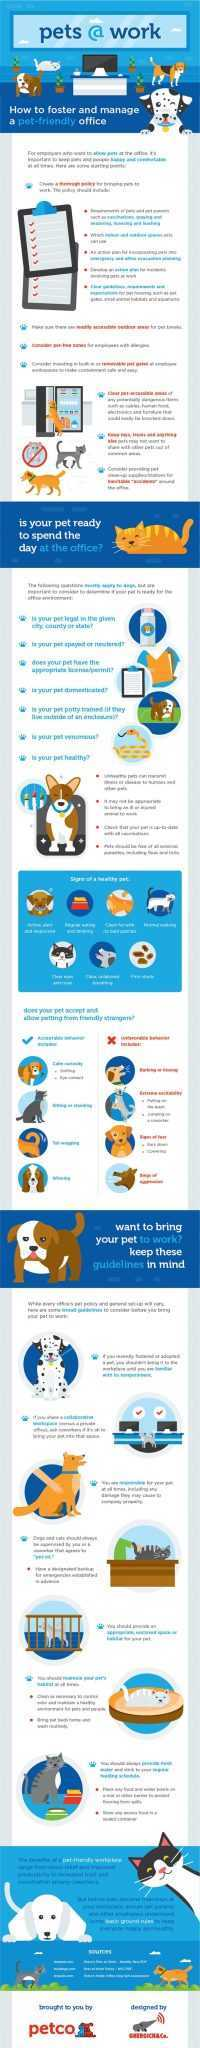 how-to-foster-manage-pet-friendly-office-page-content